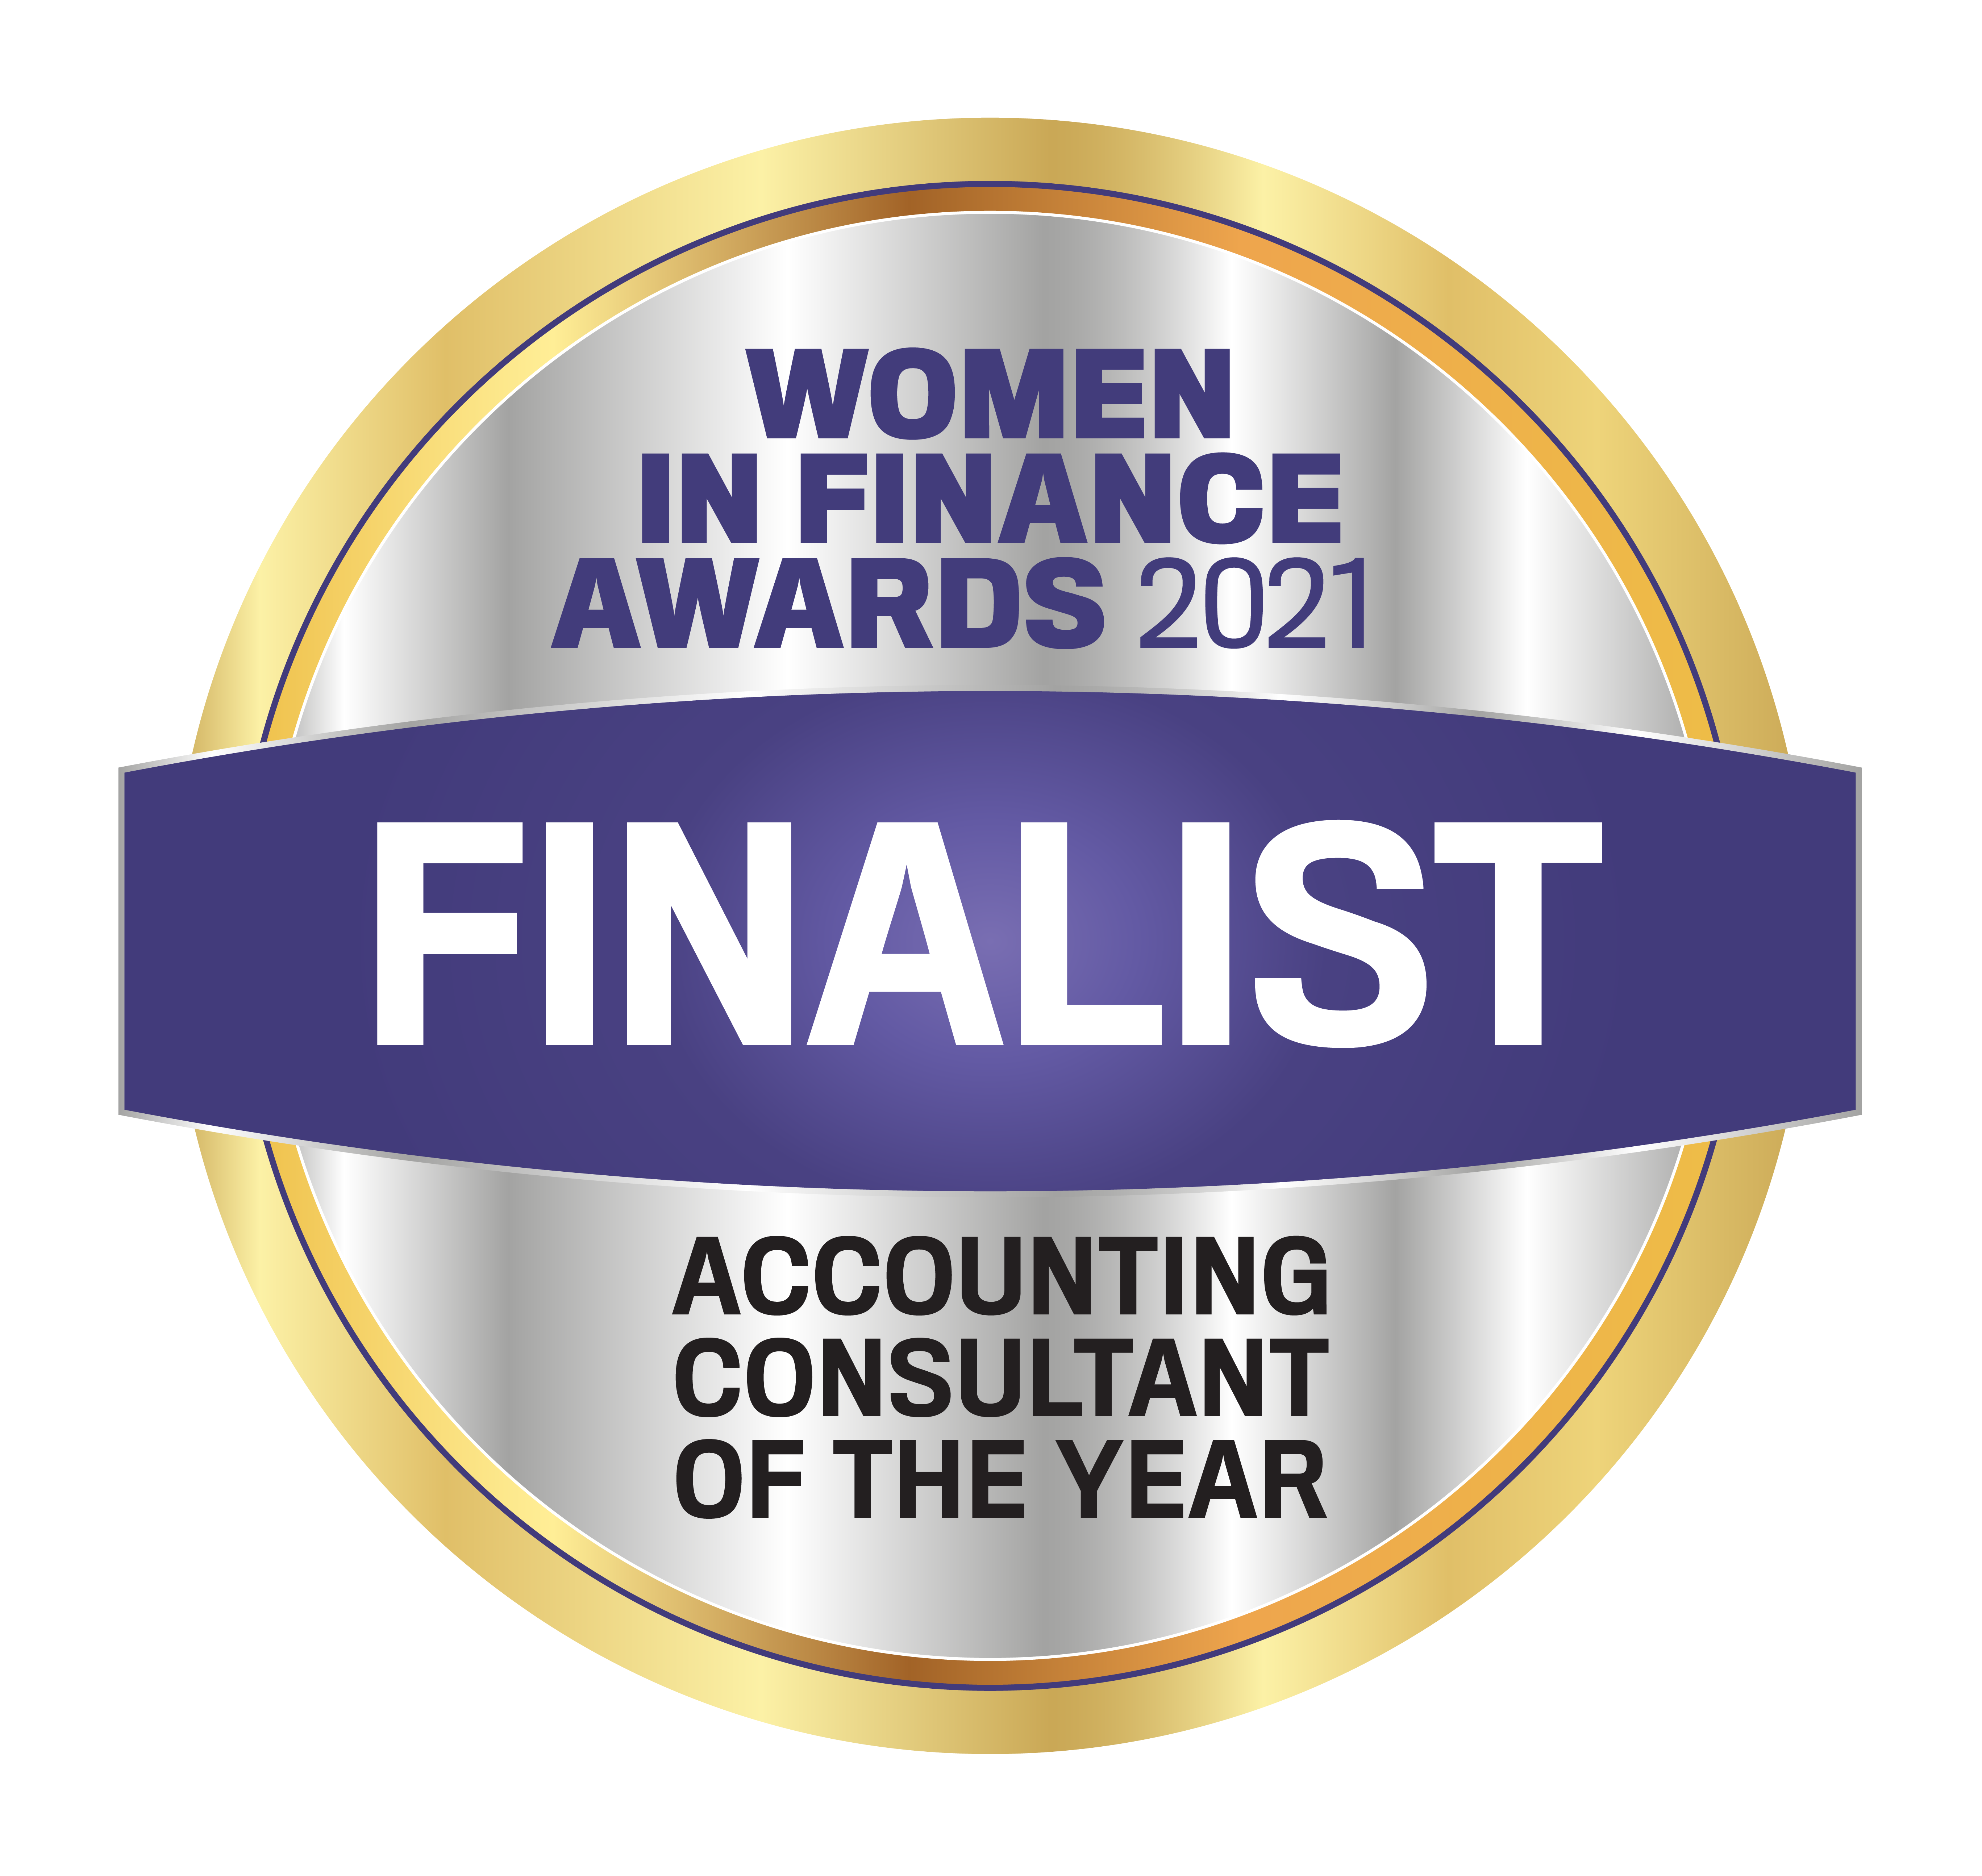 Finalist Accounting Consultant of the Year 2021 WIFA